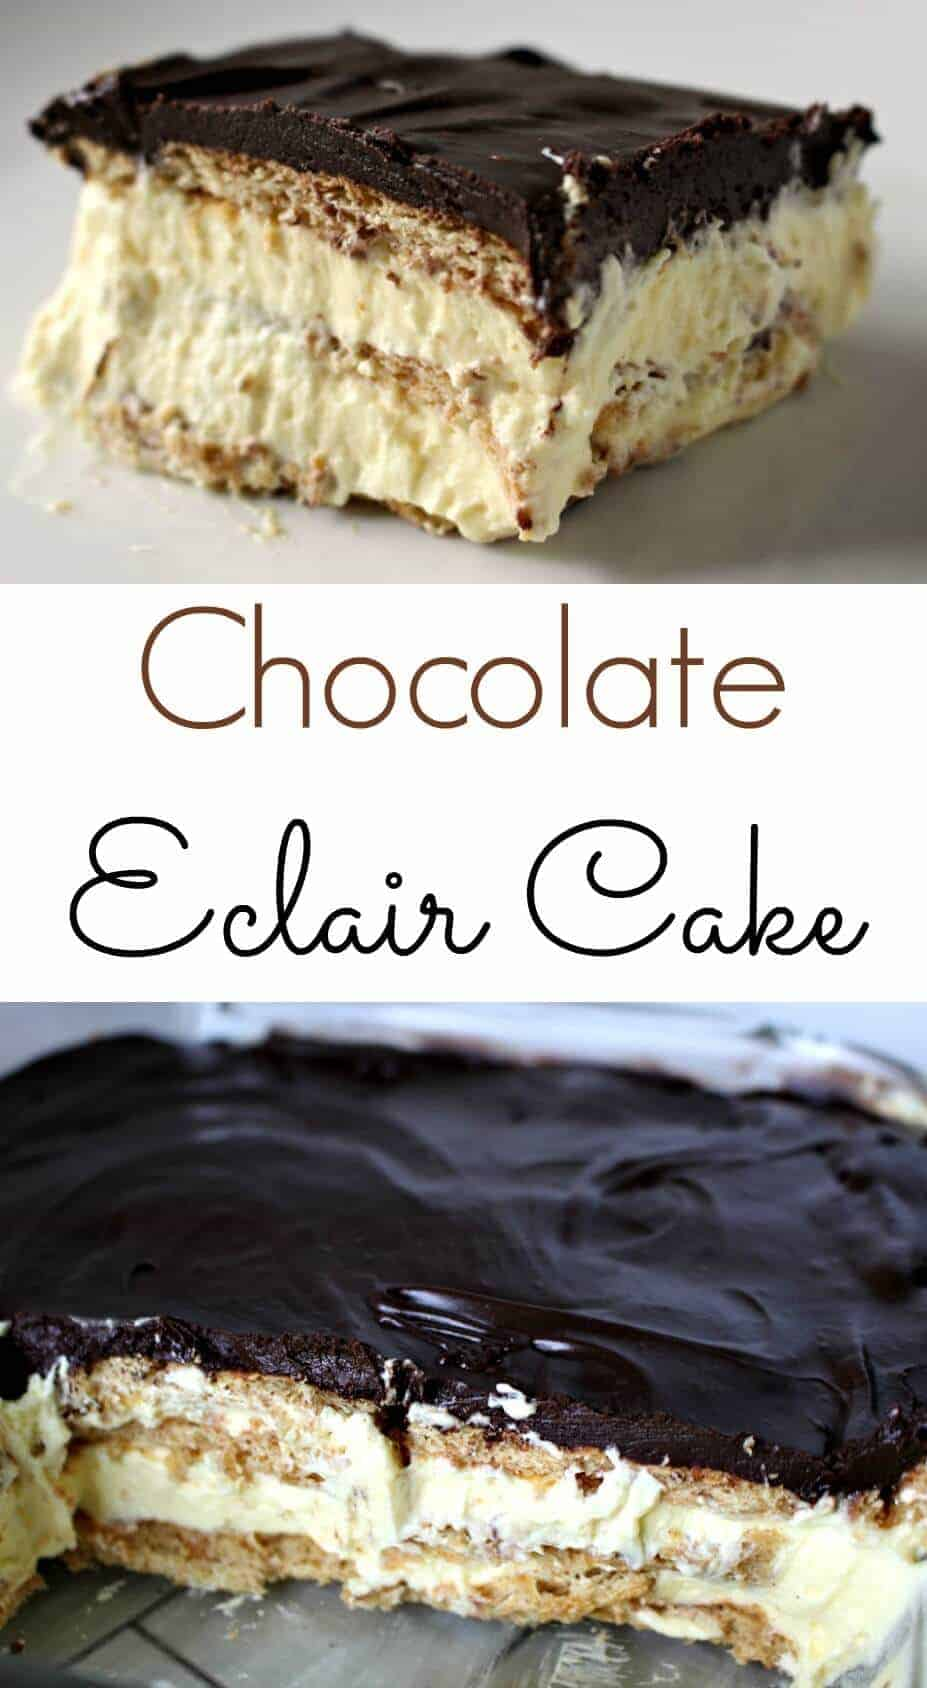 Images Of Chocolate Eclair Cake : The Easiest Eclair Cake - The Perfect No Bake Dessert ...